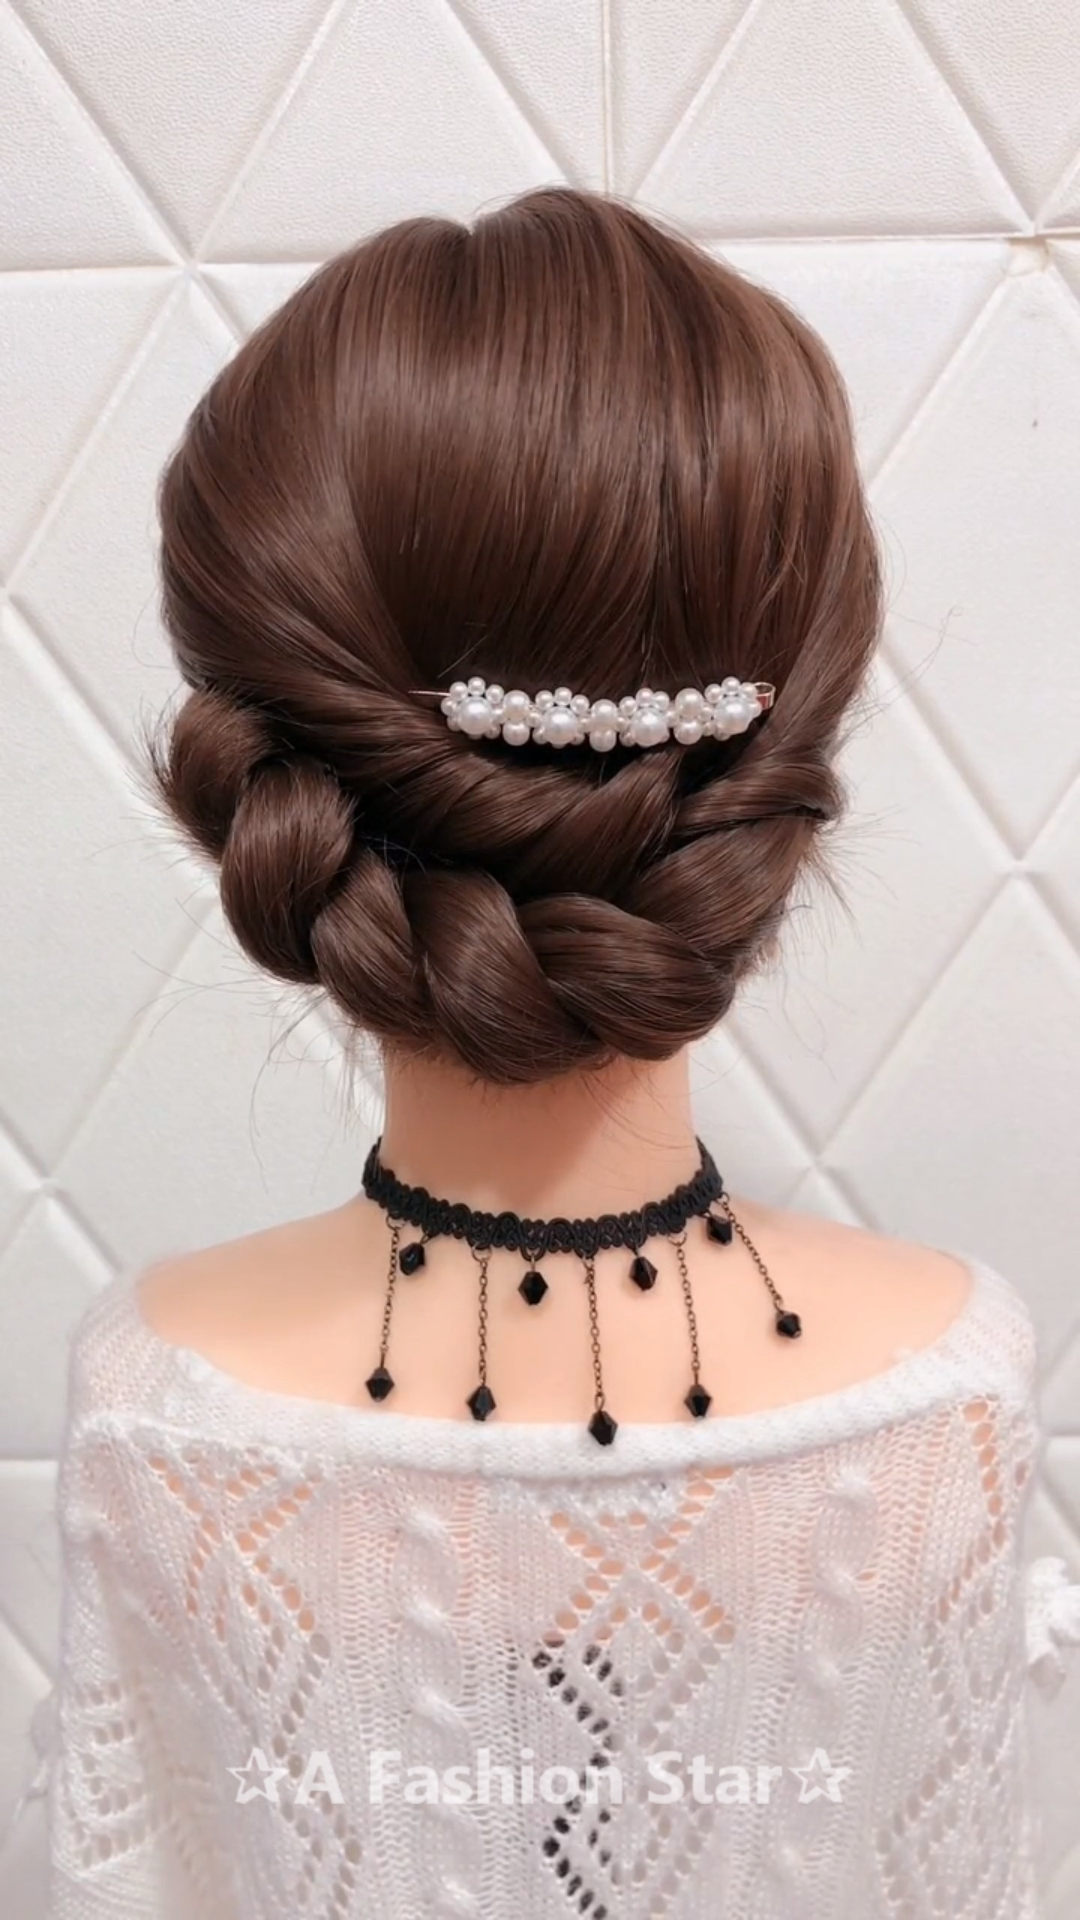 10 Amazing Braid Hairstyles - Hairstyle For 2019 #hairideas